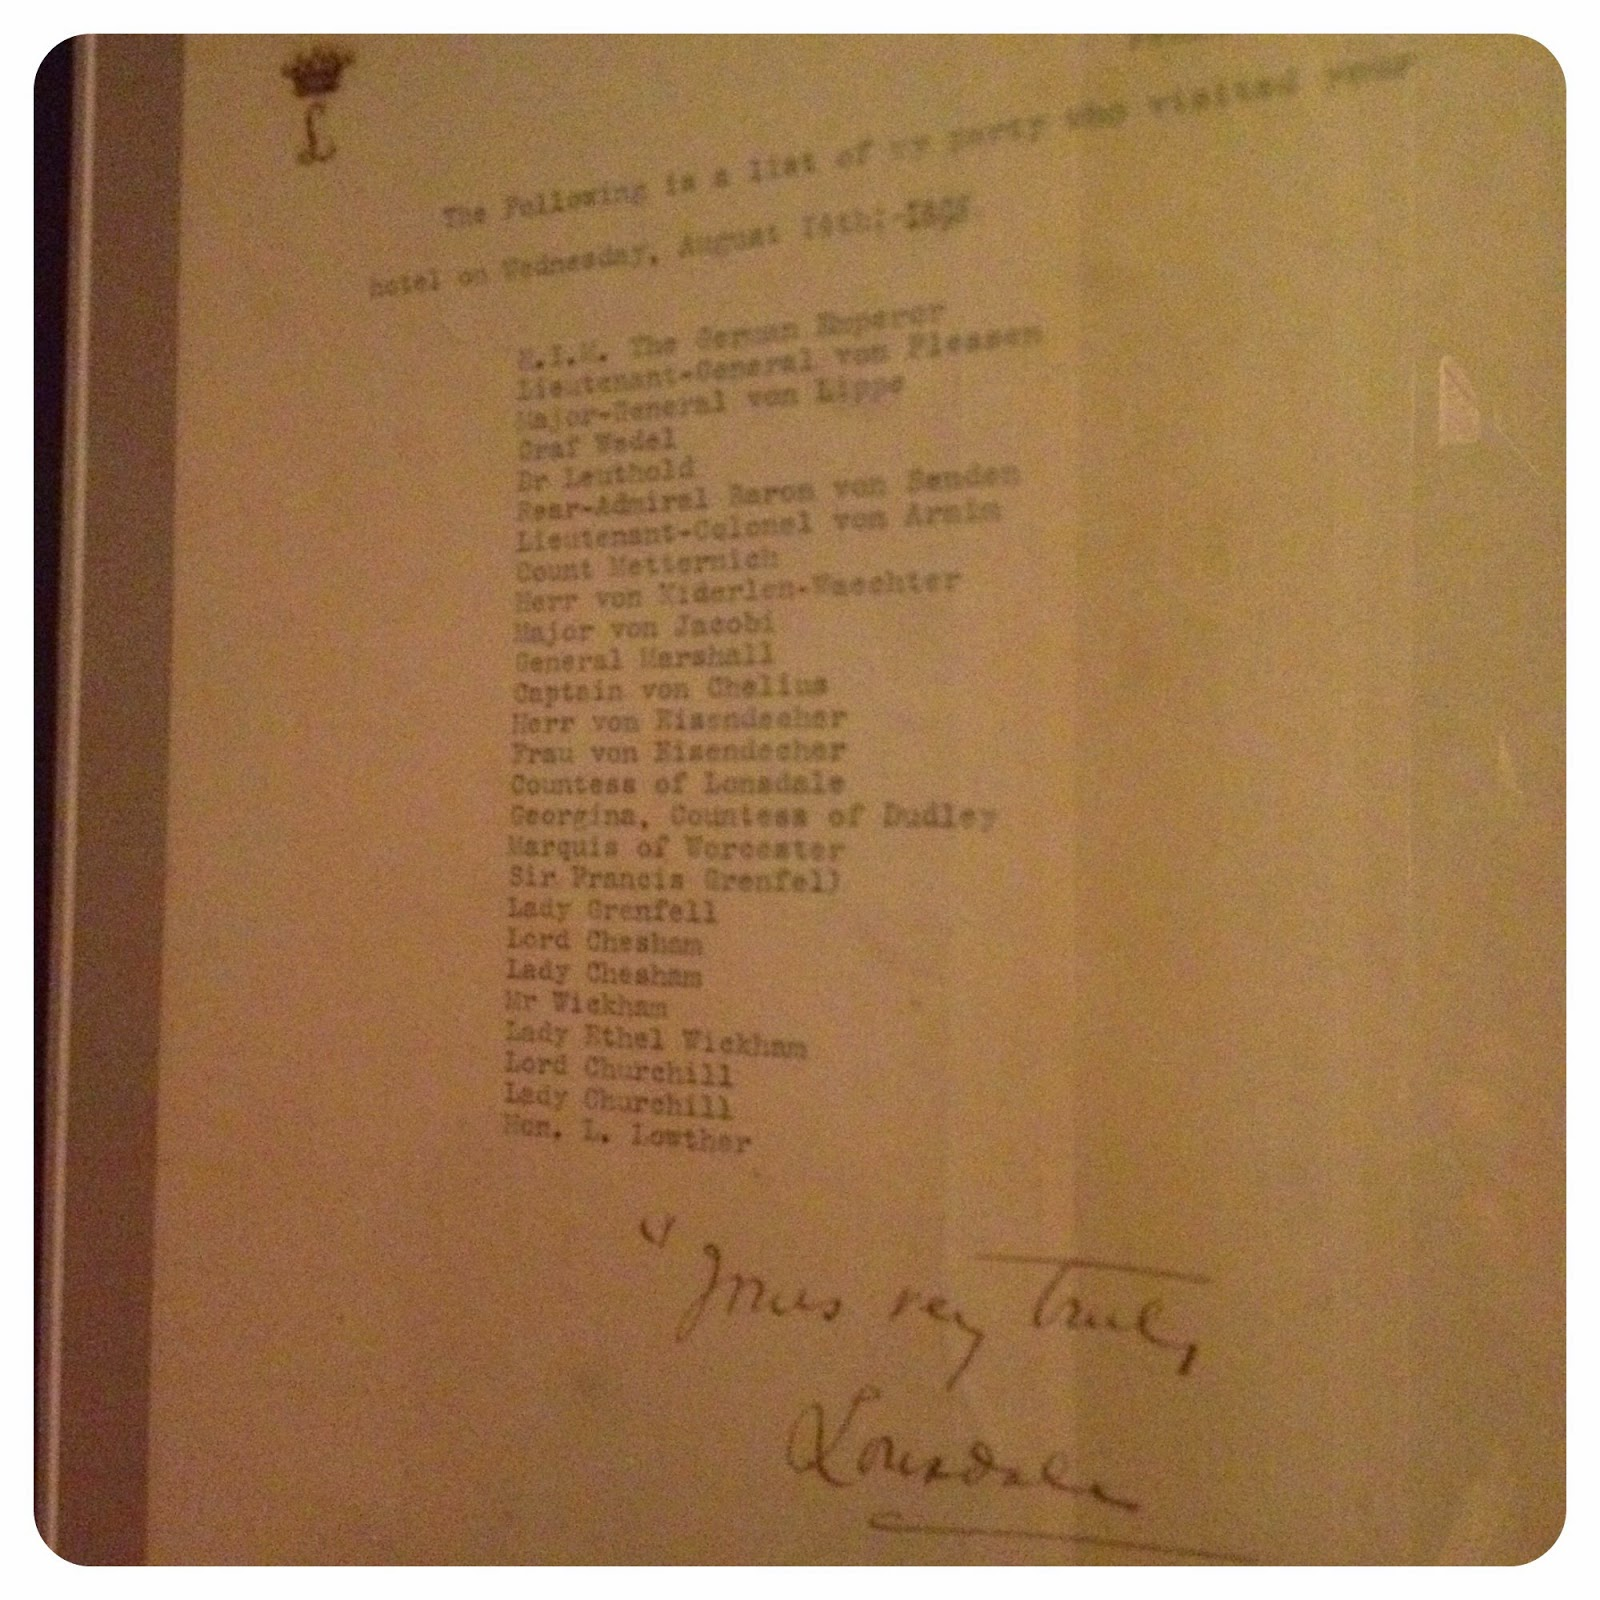 A list of the visitors to the hotel in 1895 including Kaiser Wilhelm of Germany, displayed in the hotel bar.